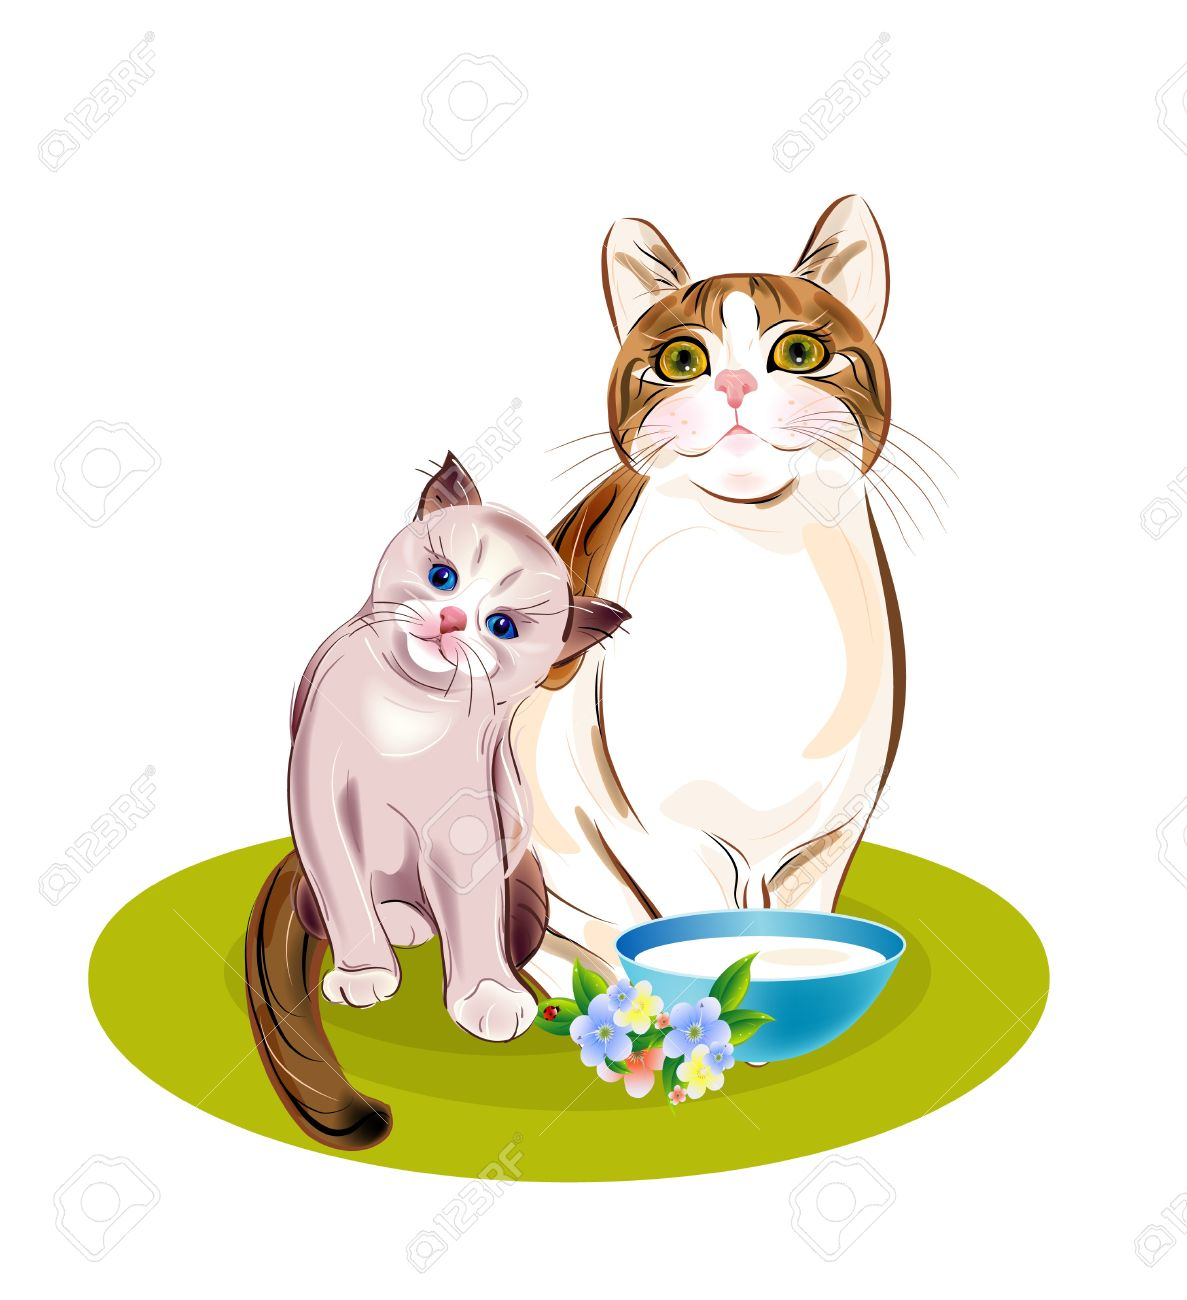 Free Clipart Kittens at GetDrawings.com.